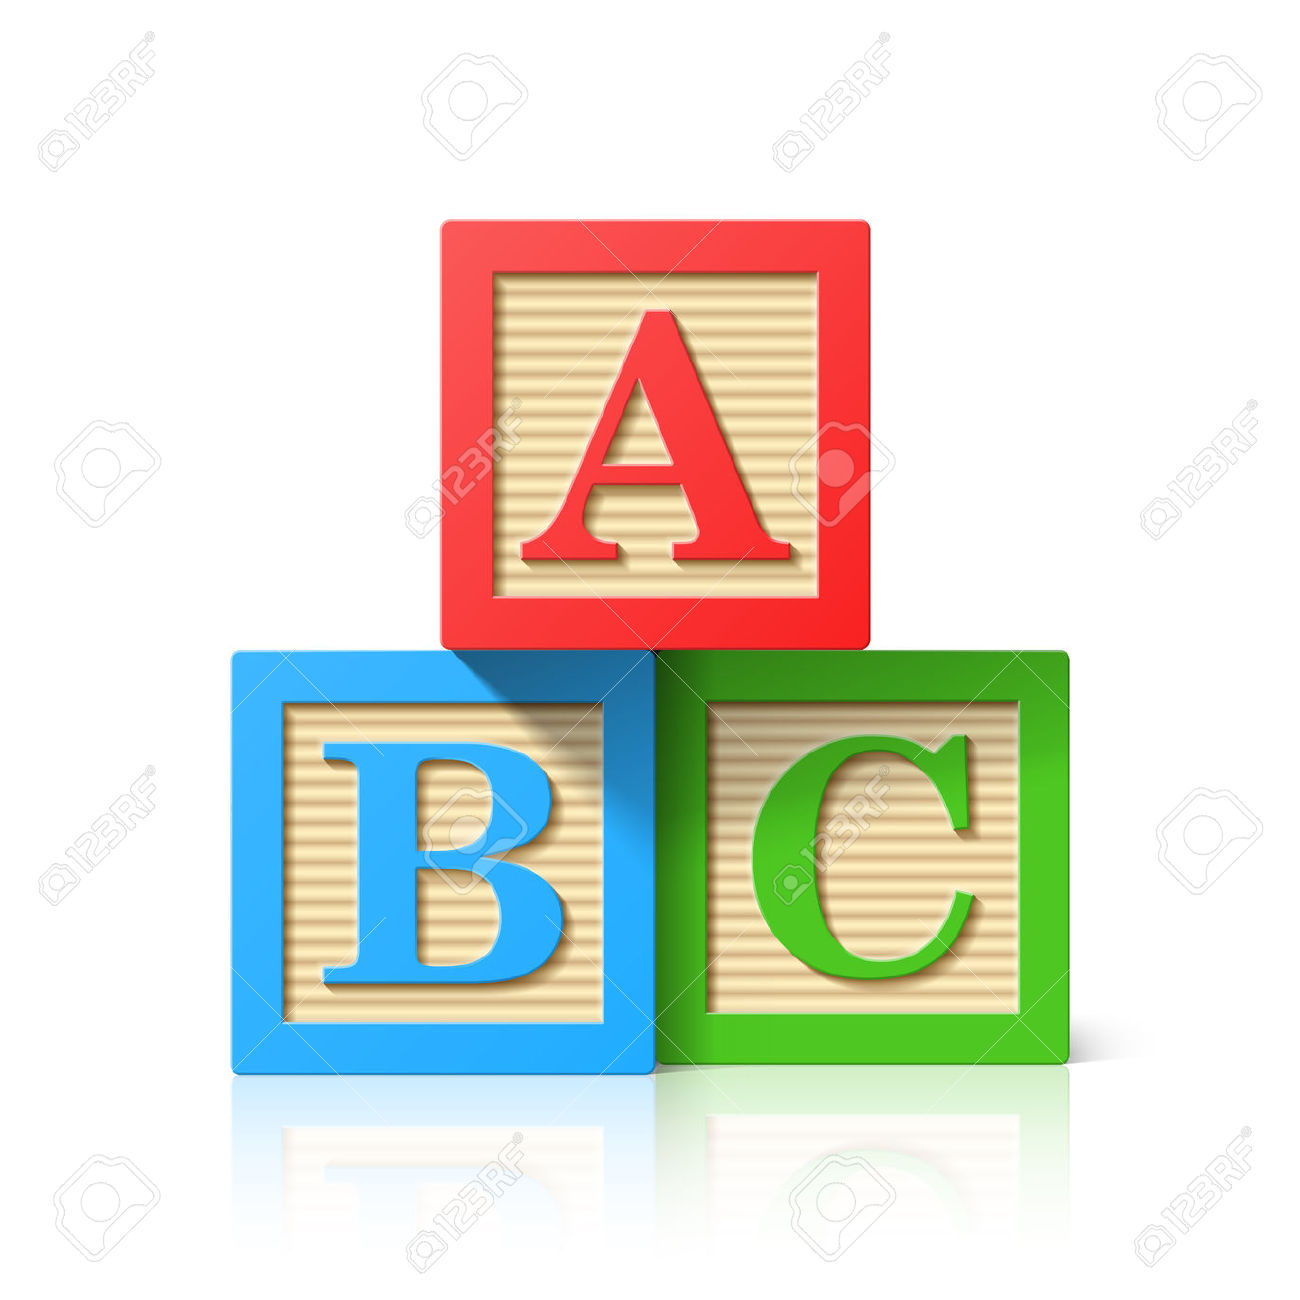 Clipart of wooden blocks with alphabet letter.  block cliparts stock